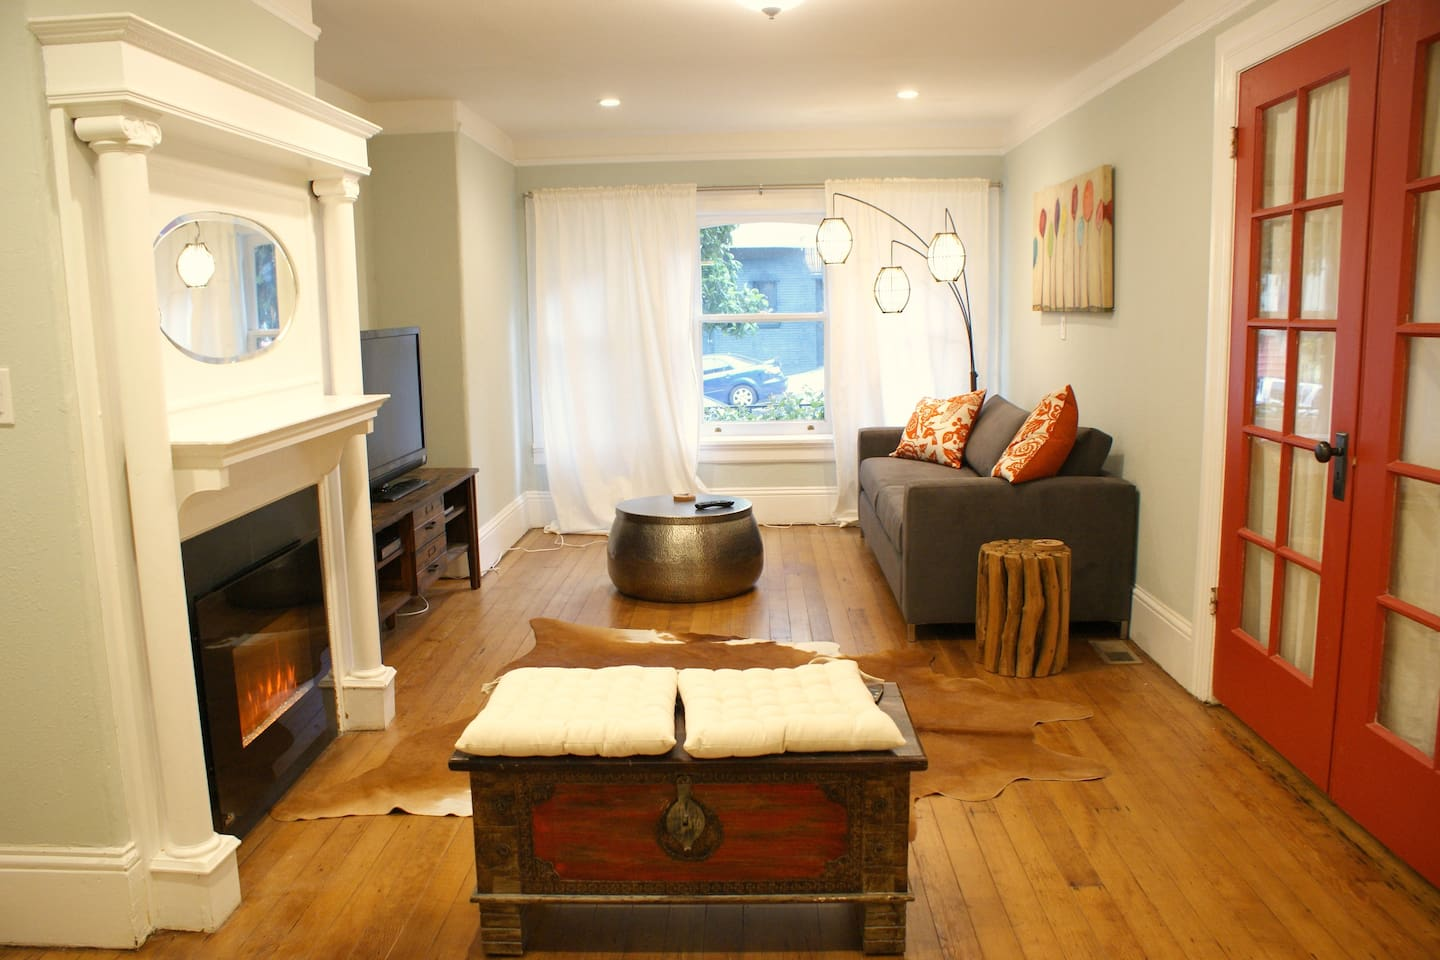 Living room with electric fireplace and bedroom doors to the right.